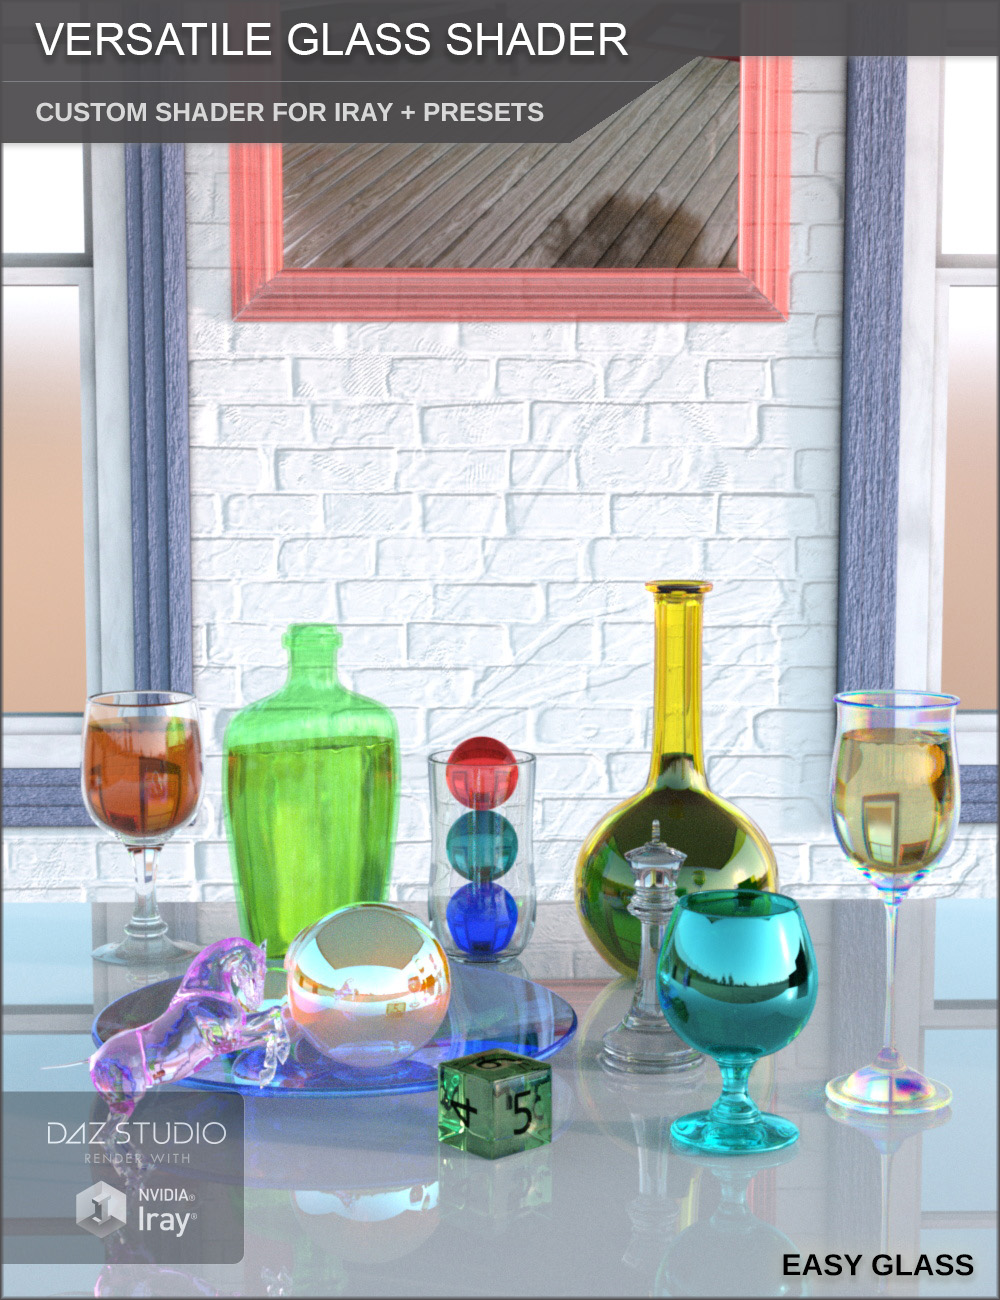 Versatile Glass Shader - Custom Shader and Presets for Iray by: SF-Design, 3D Models by Daz 3D